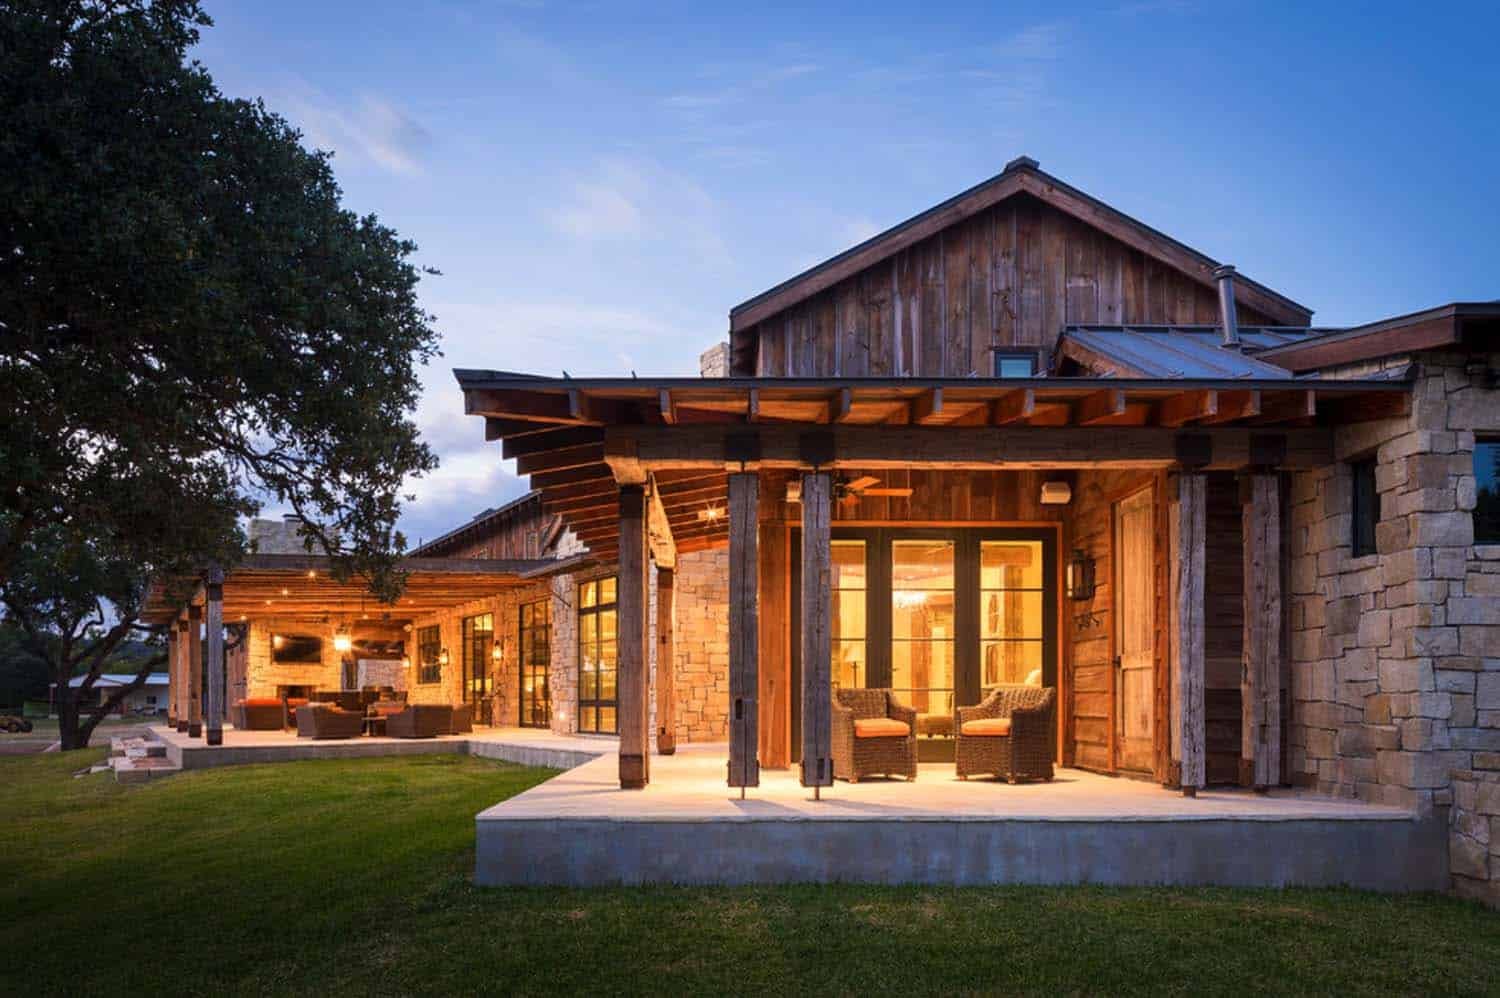 Modern rustic barn style retreat in texas hill country Rustic contemporary house plans